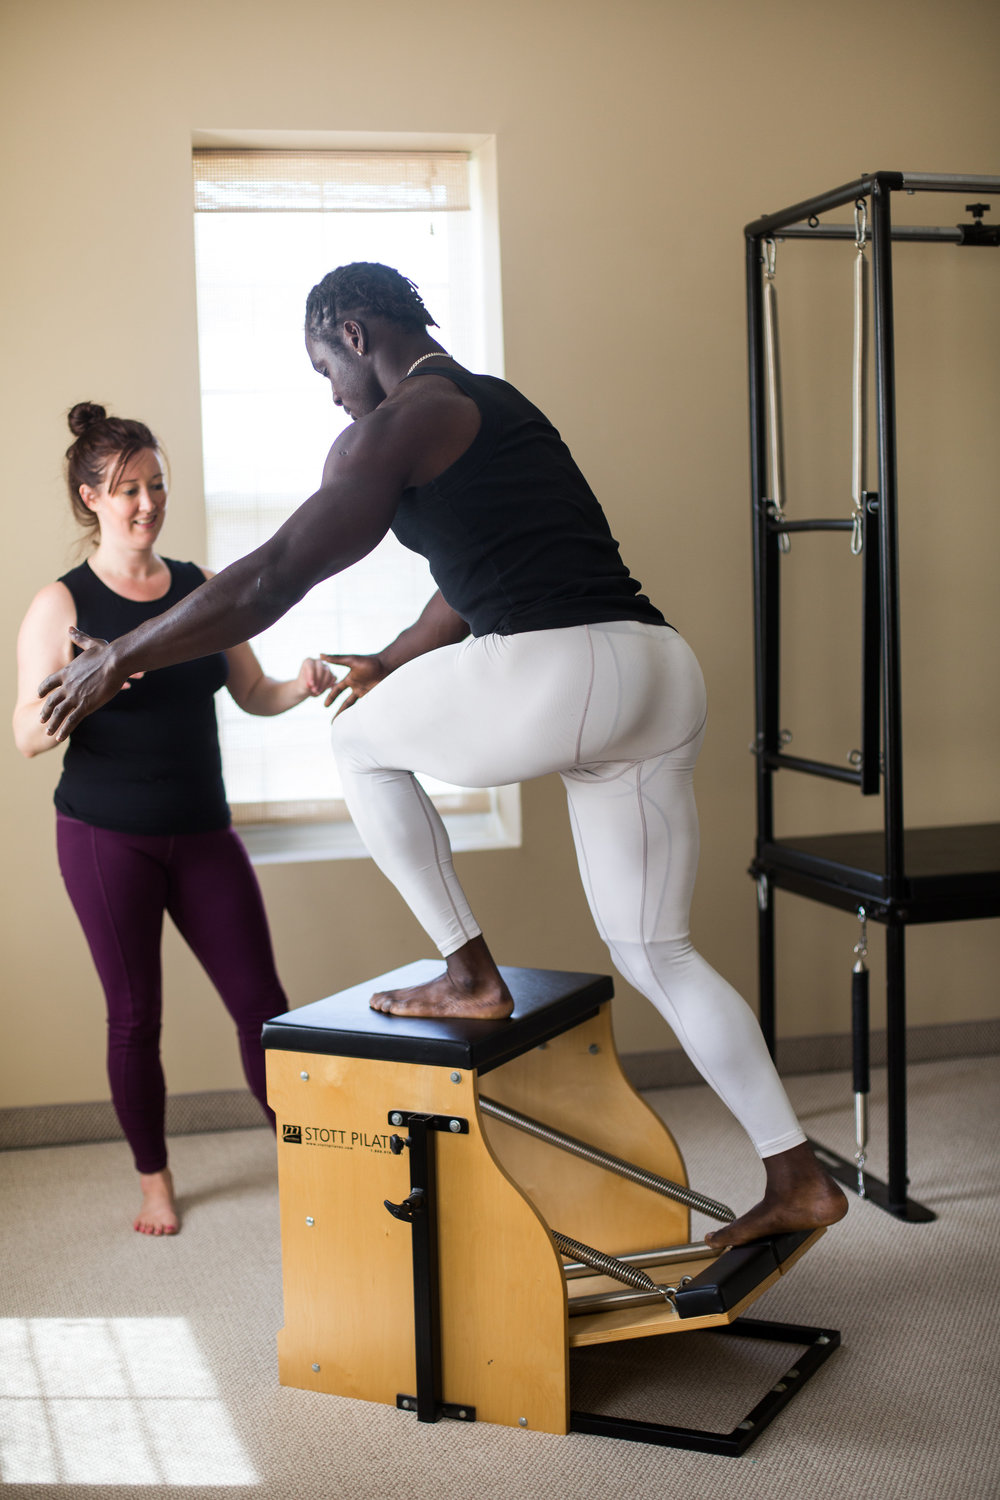 """The Pilates chair—or """"wunda chair,"""" as Joseph Pilates called it—is a powerful piece of exercise equipment. Its small size belies its remarkable ability to build core stability, upper-body strength and lower-body power to improve performance in athletes, retrain the body after injury and increase overall physical conditioning. Although it's been part of the Pilates system for many years, the chair is currently experiencing a new level of interest as a great tool for teaching clients either individually or in small groups."""